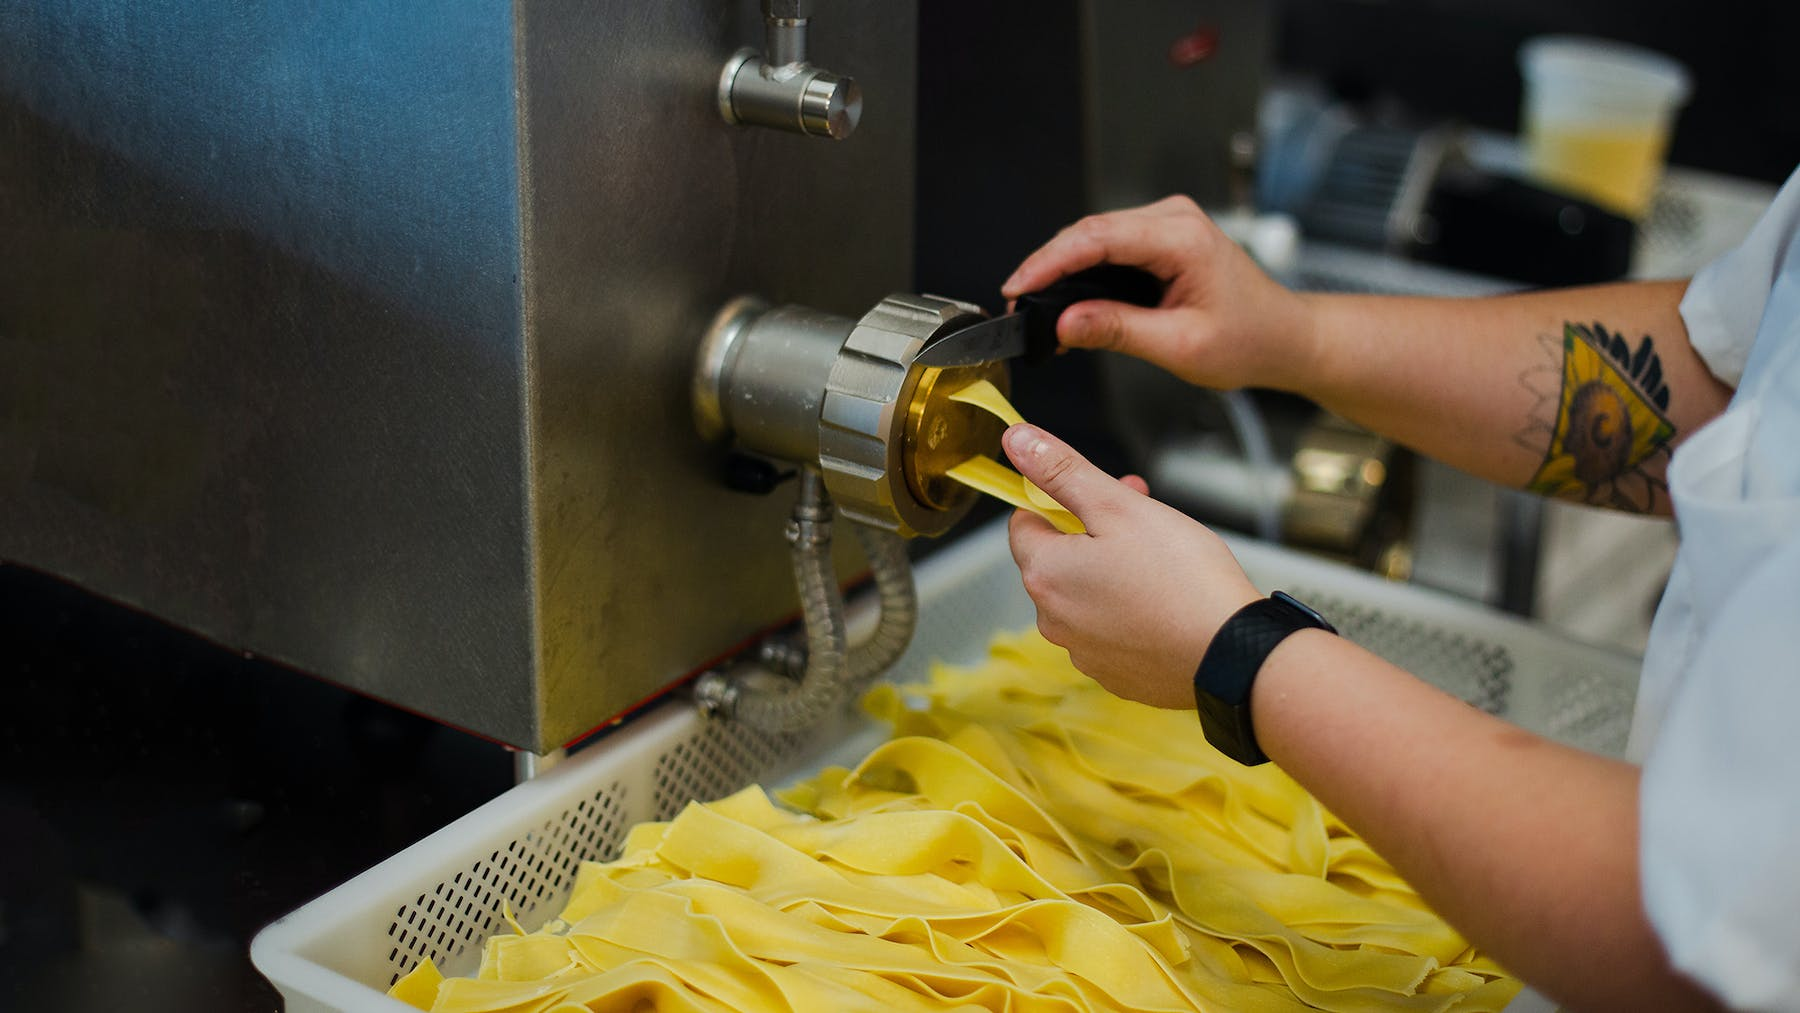 close up of hands making fresh pasta from an extruder